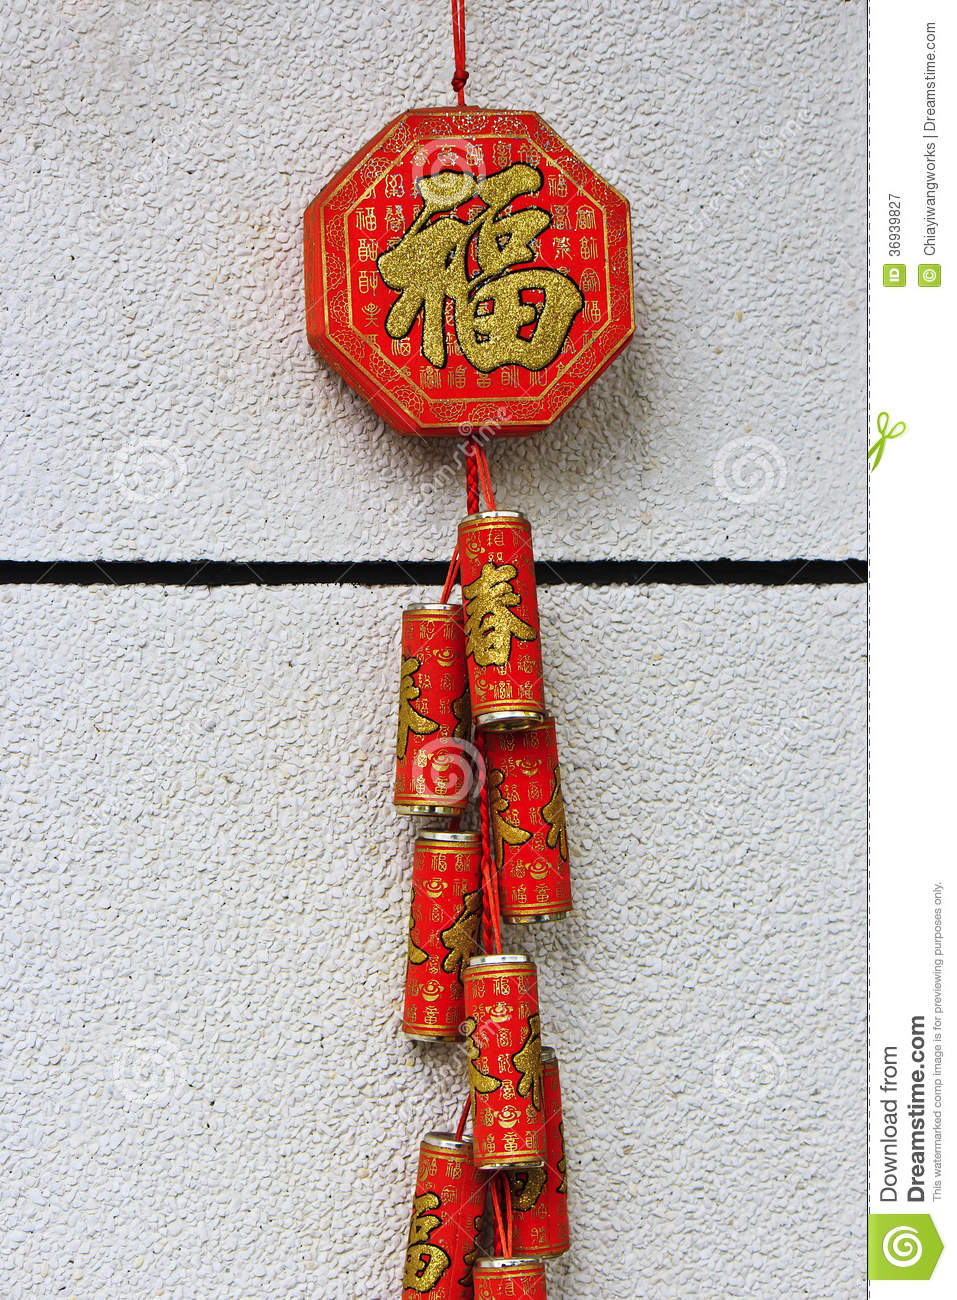 Chinese New Year firecracker decorations